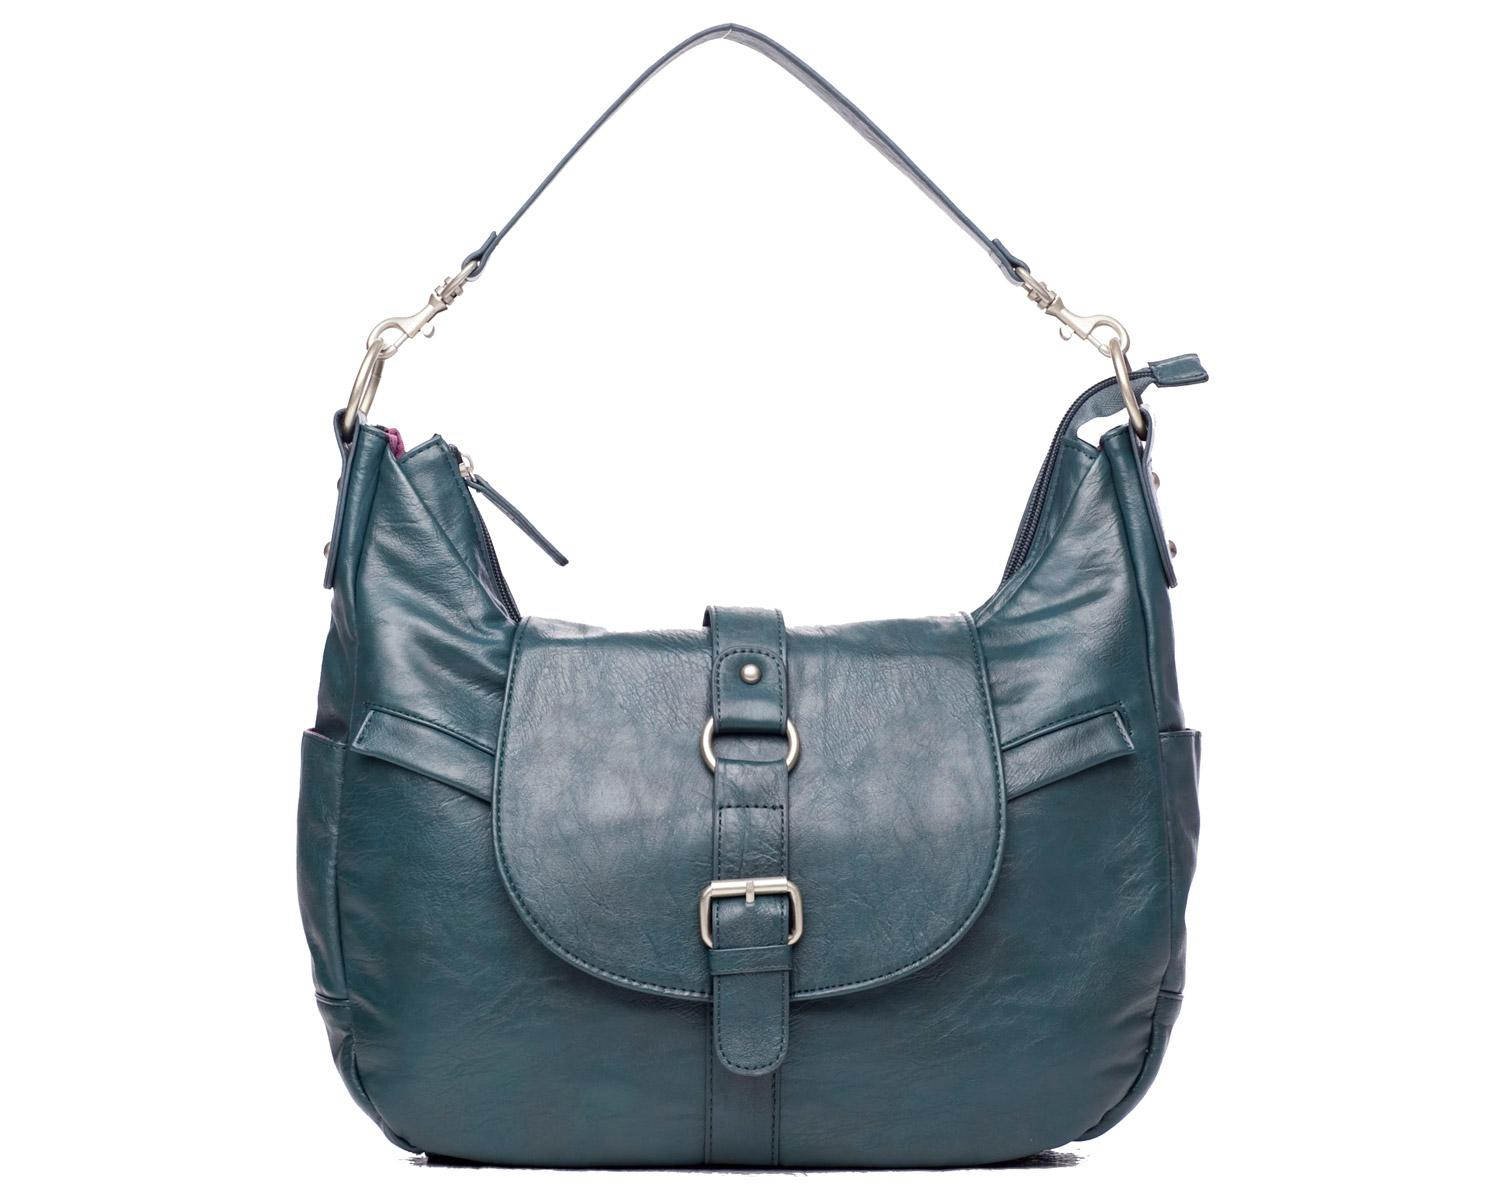 b hobo bag in muted teal by kelly moore stylish camera bags. Black Bedroom Furniture Sets. Home Design Ideas